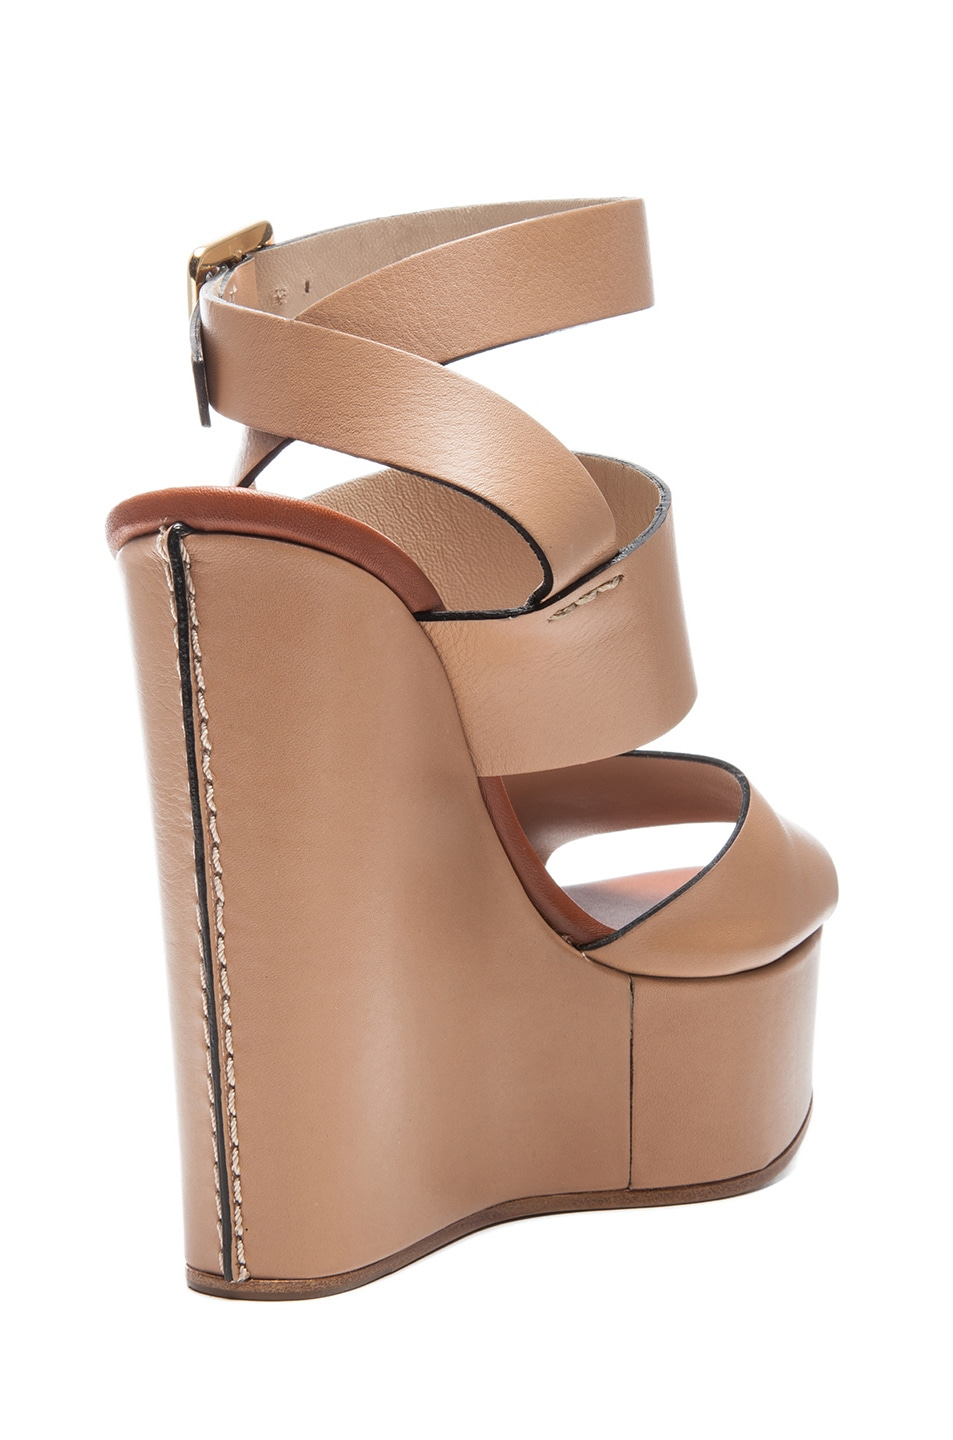 e01c9957e2452 Image 3 of Chloe Leather Wedges in Wet Sand